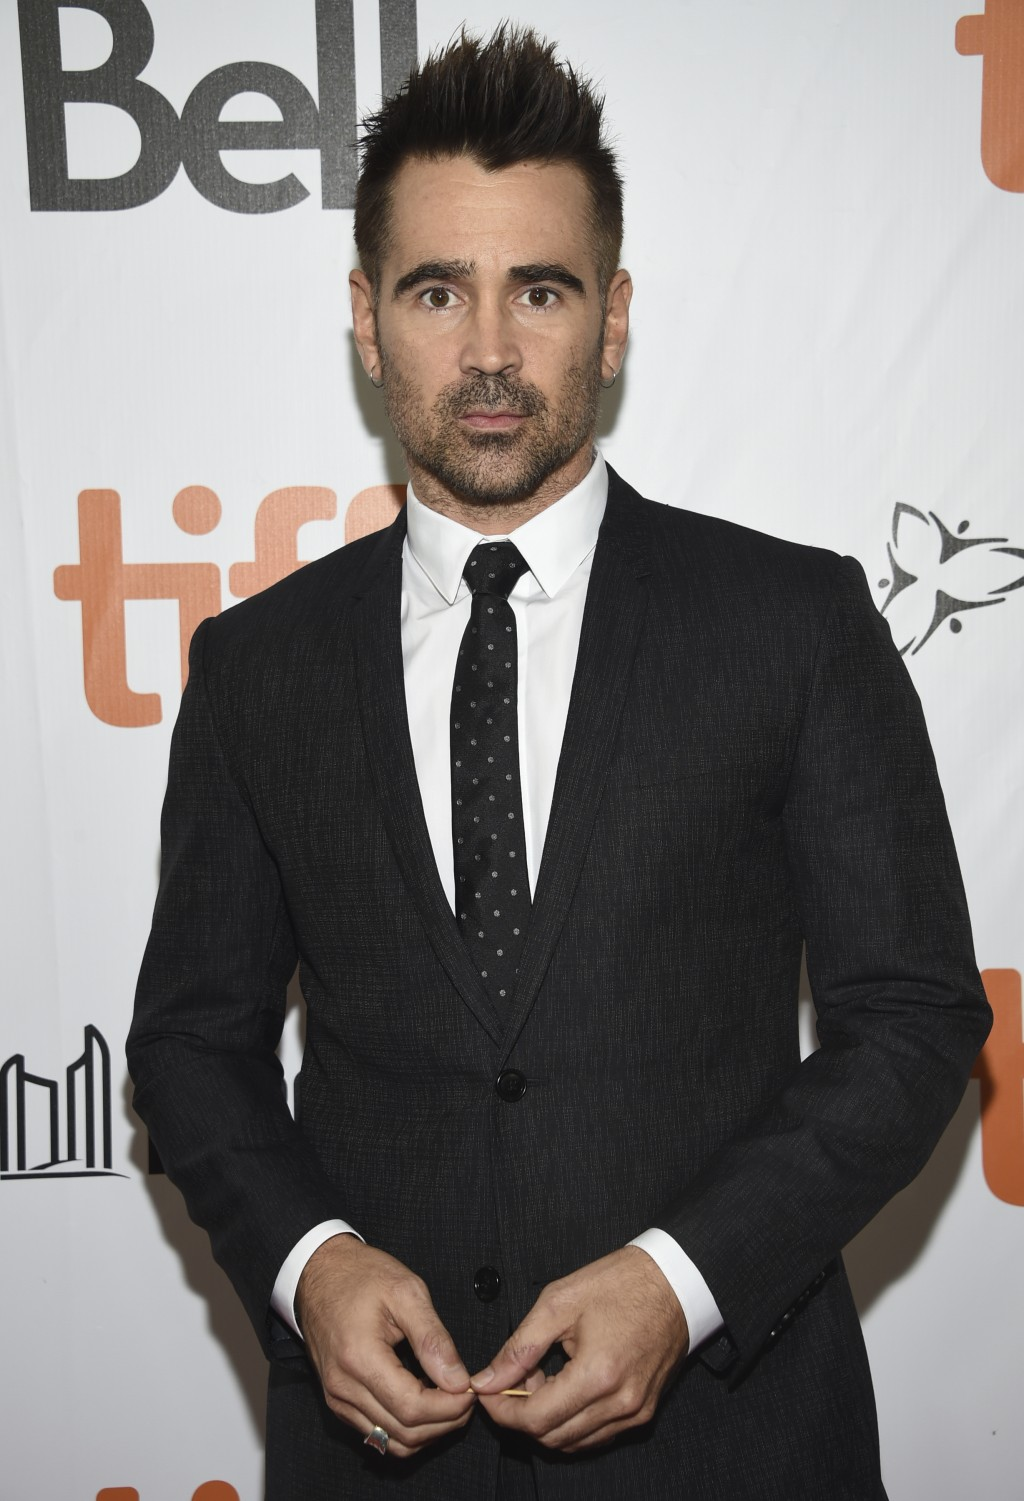 """Colin Farrell attends the premiere for """"Widows"""" on day 3 of the Toronto International Film Festival at Roy Thomson Hall on Saturday, Sept. 8, 2018, in"""